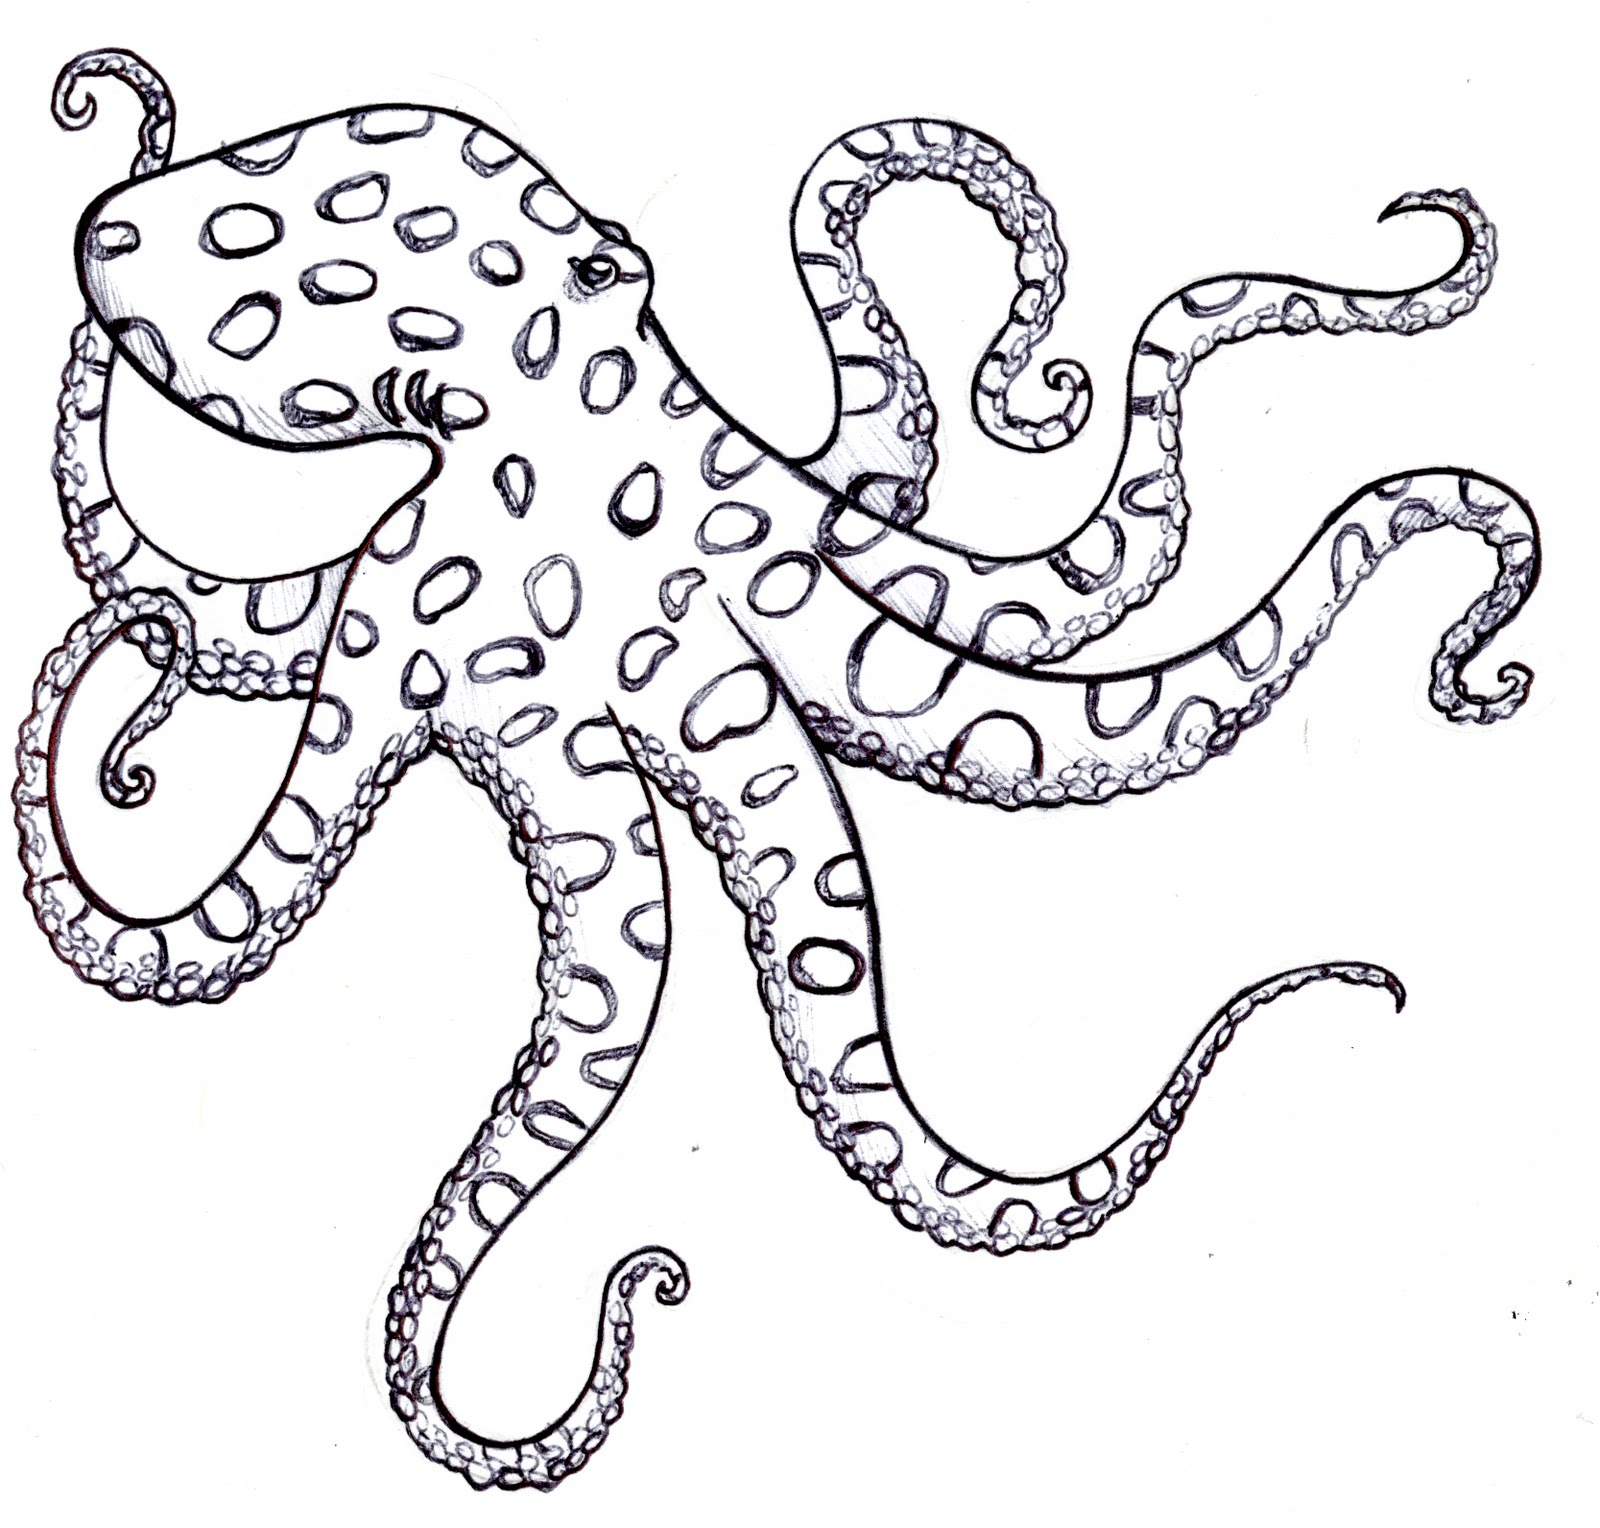 Simple Octopus Drawing at GetDrawings.com | Free for ...